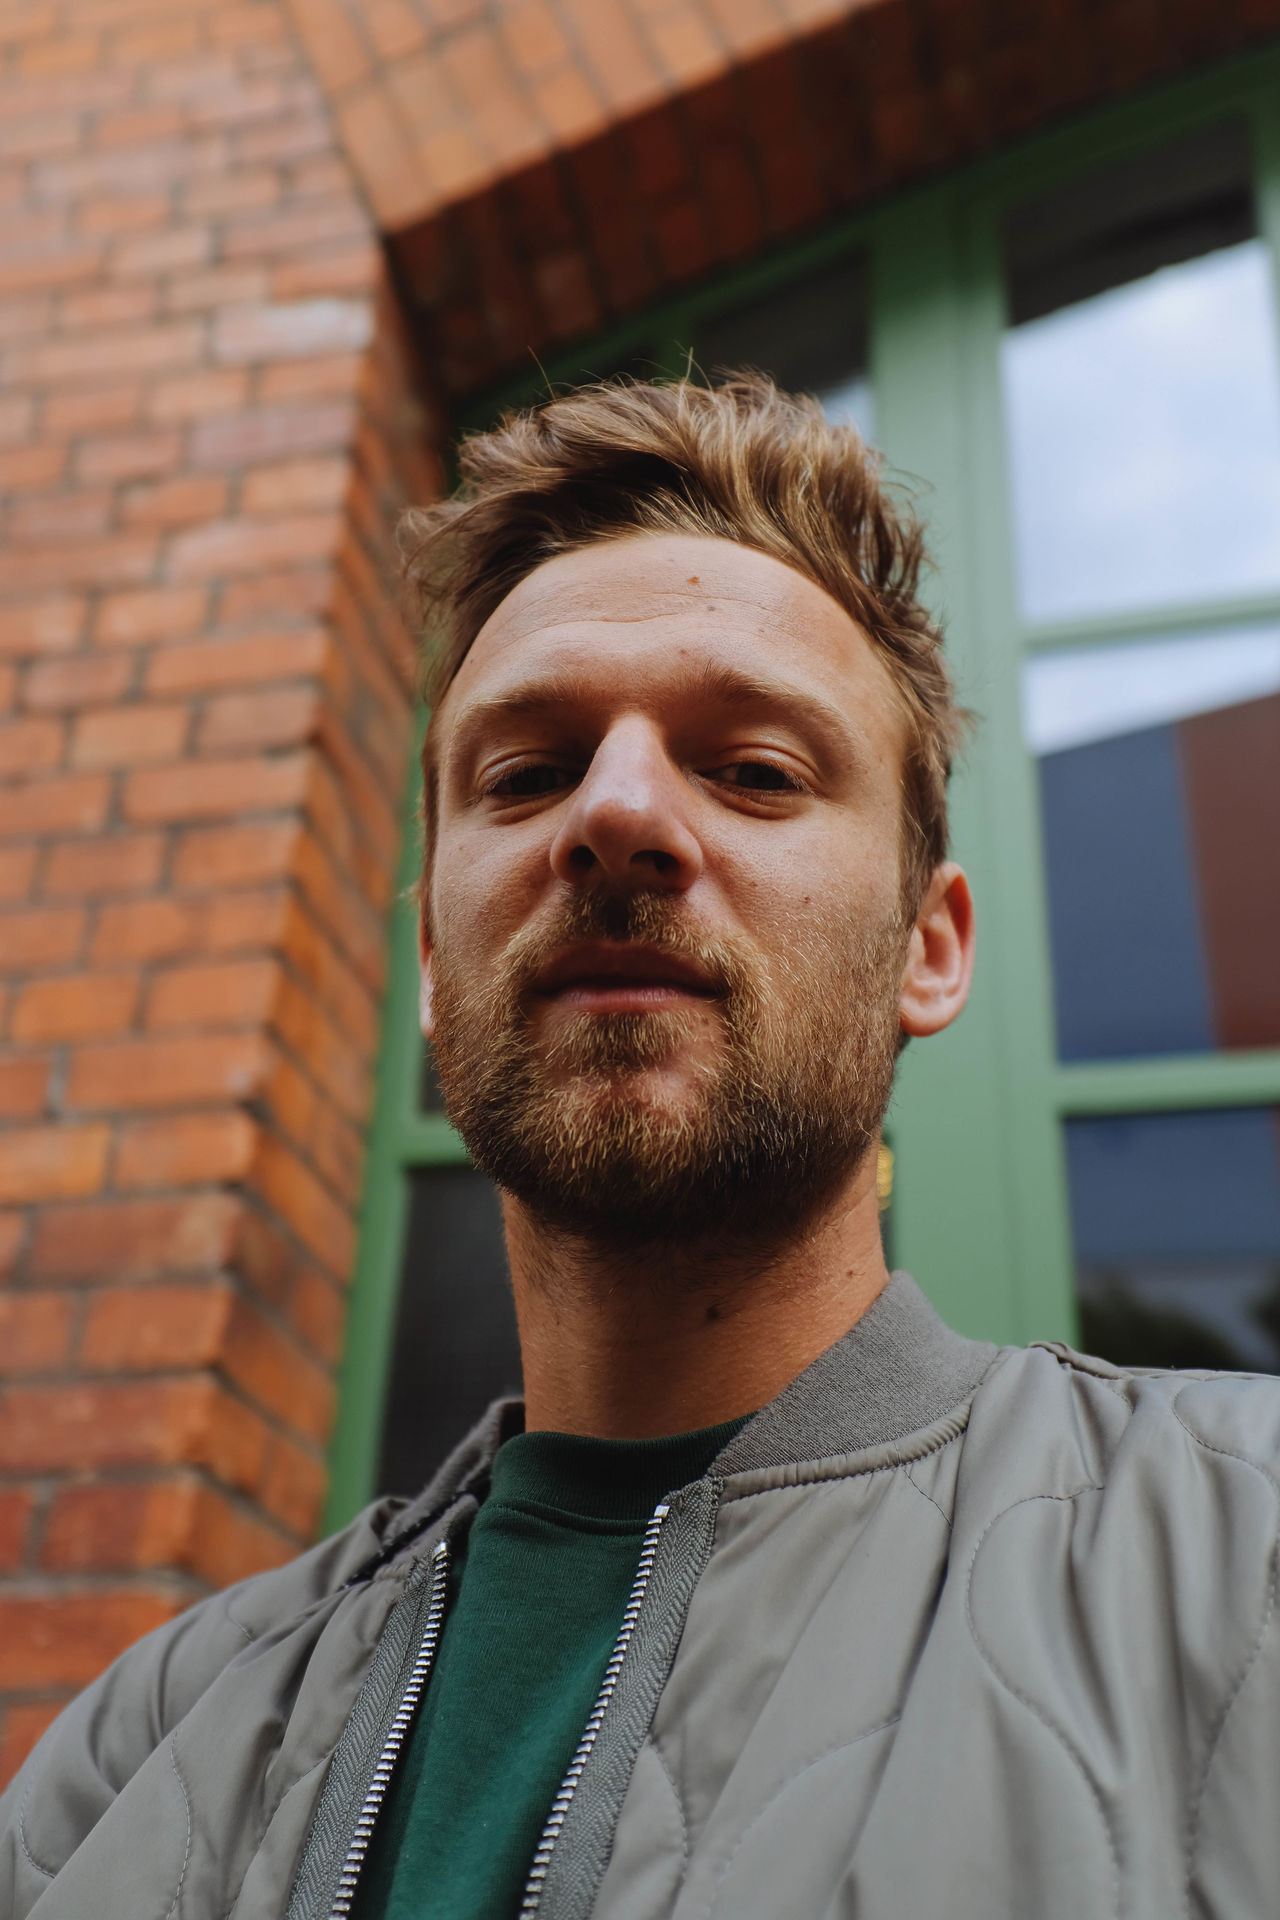 Architecture Beard Brick Wall Close-up Day Headshot One Person Outdoors People Portrait Real People Young Adult